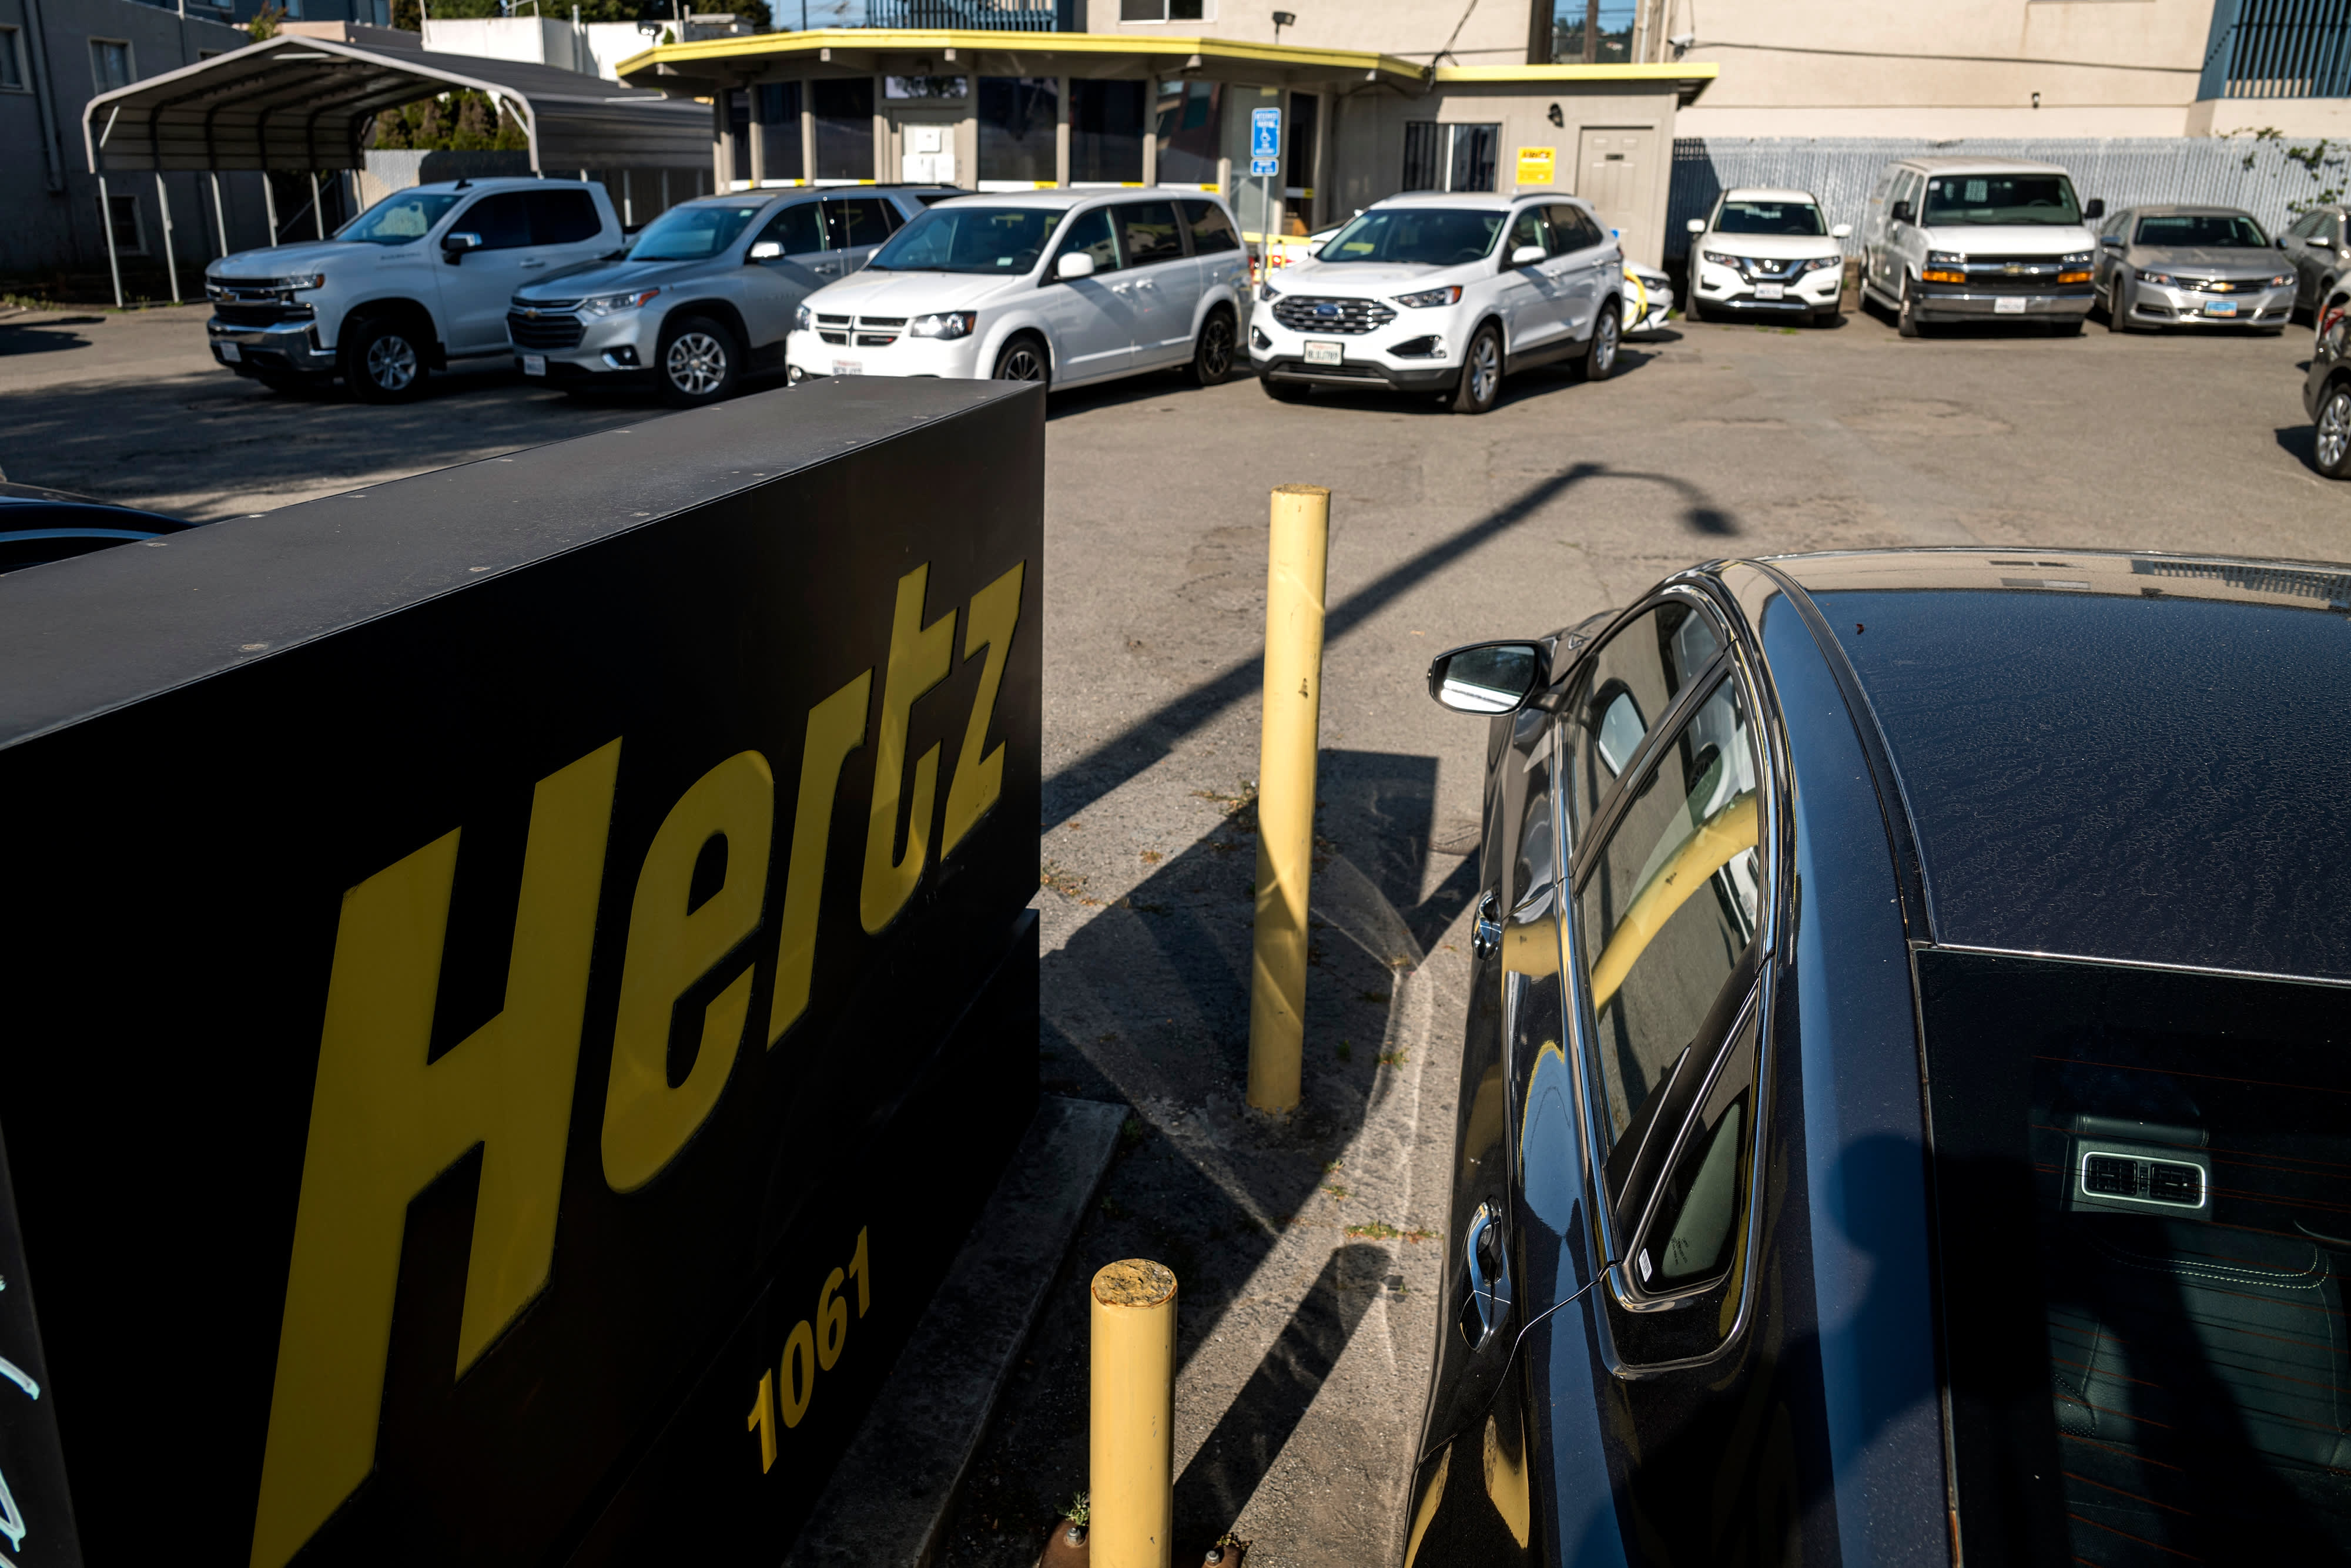 Hertz bankruptcy and a distressed rental car market means more pain for U.S. automakers